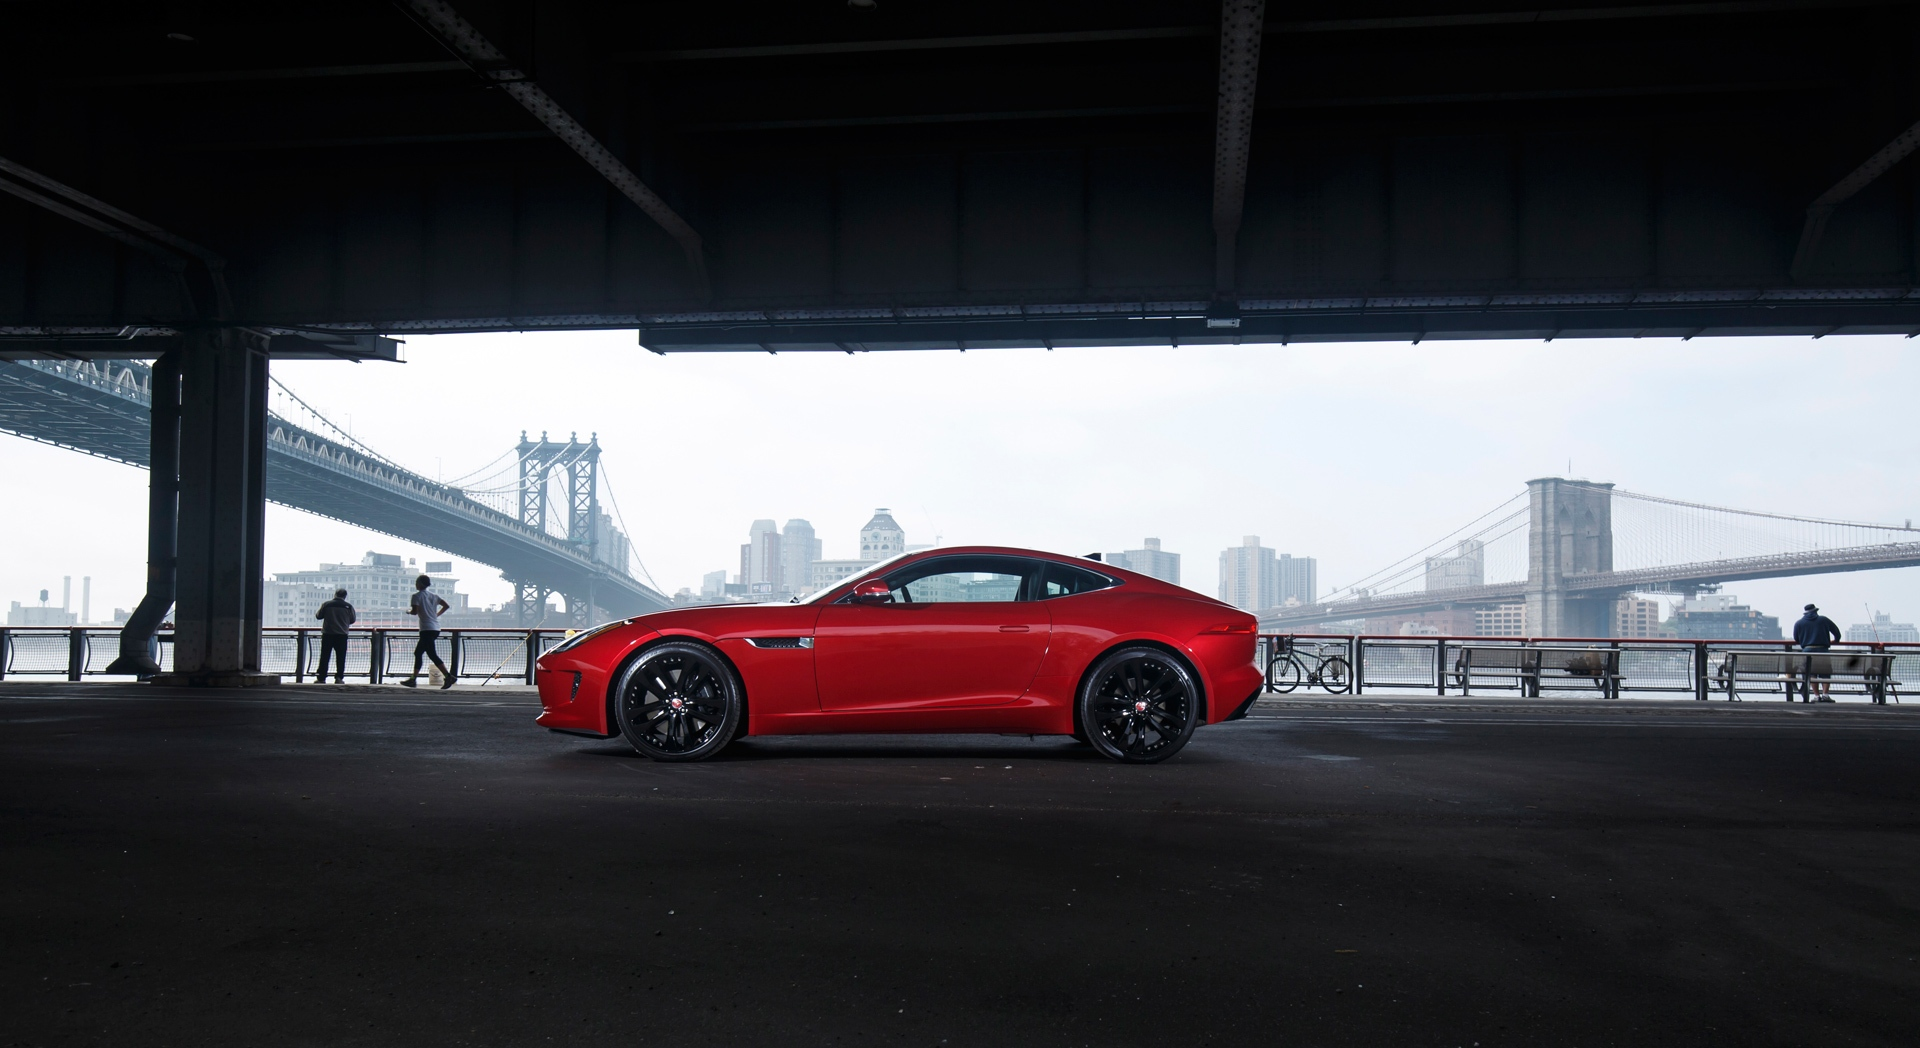 jaguar f type red cool